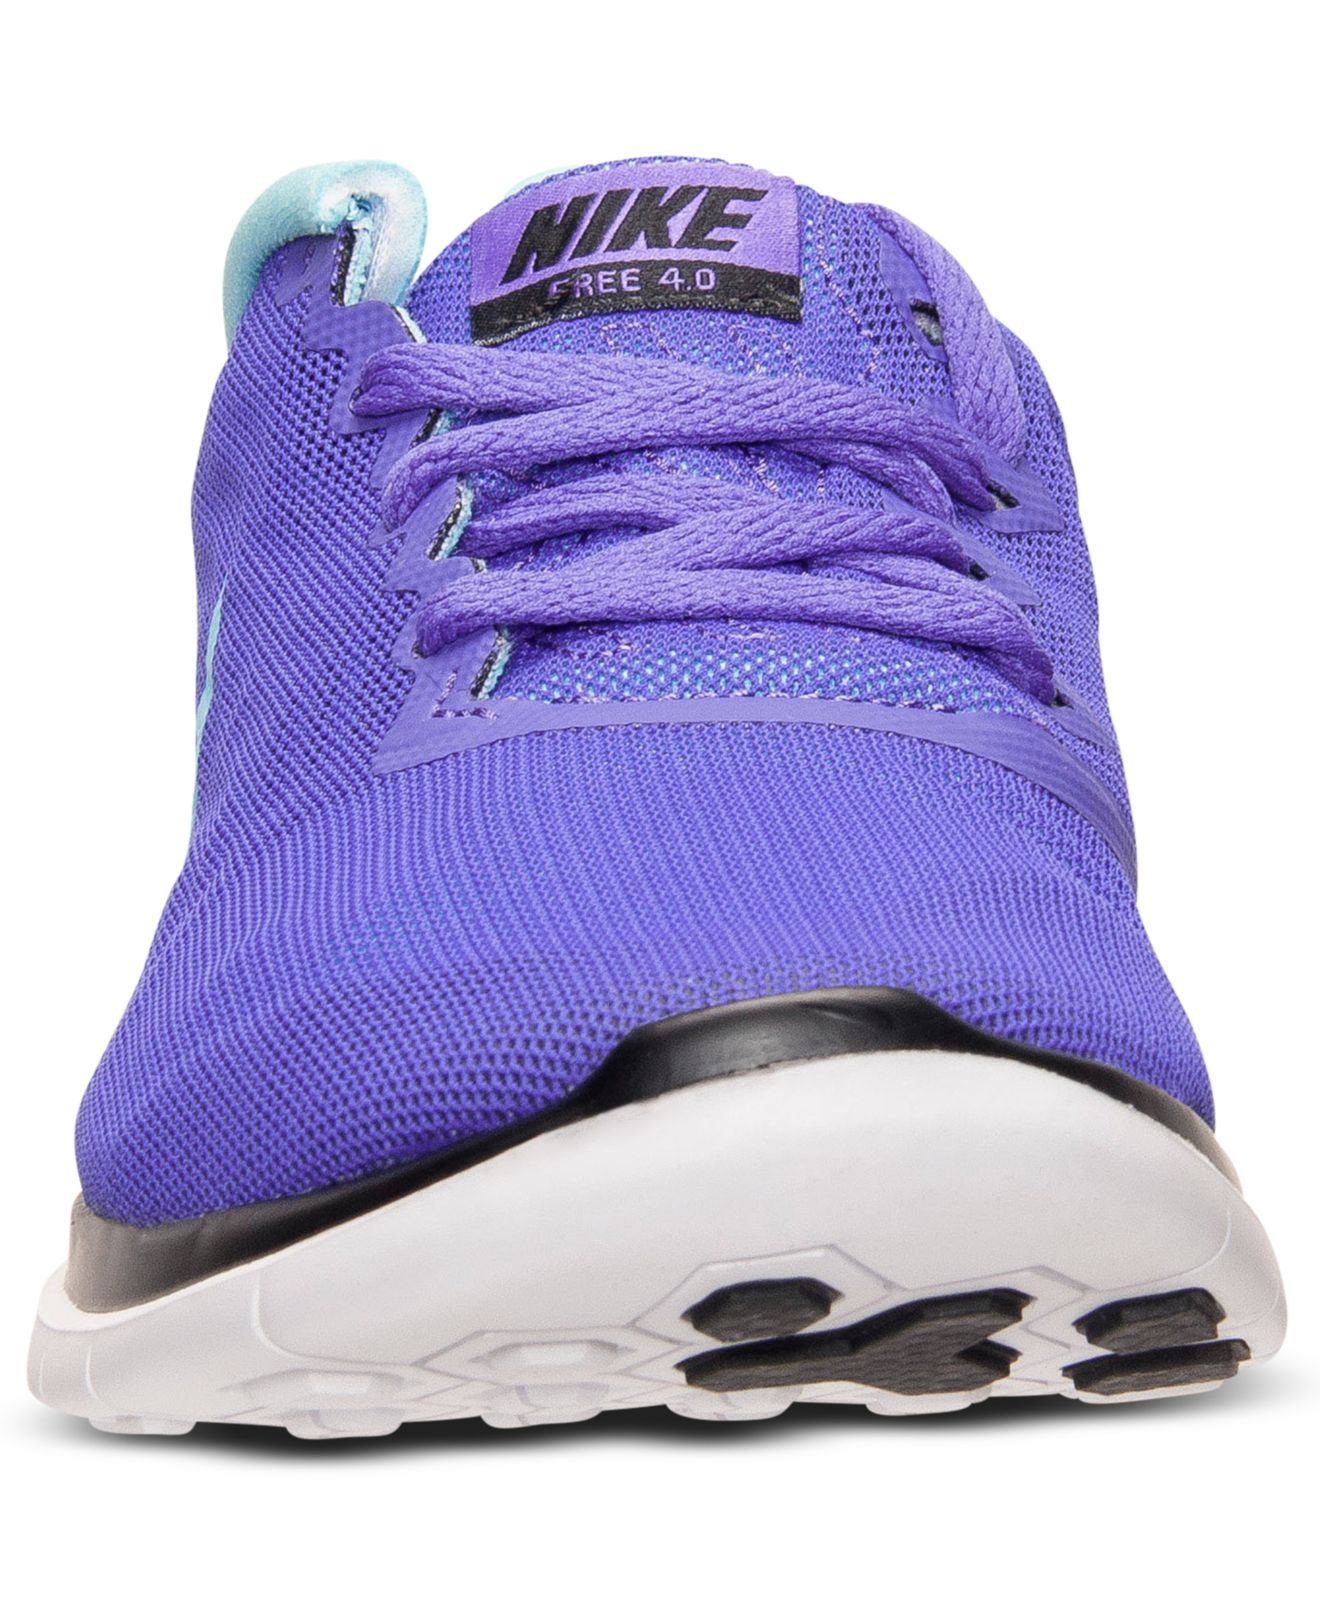 c04a07c9e0189 ... 5.0 running shoes mens 9 615805 418 blue orange 67fcb 3f32e  amazon nike  free run 4.0 v3 finish line black fridaynike free run 4.0 finish line  peacock